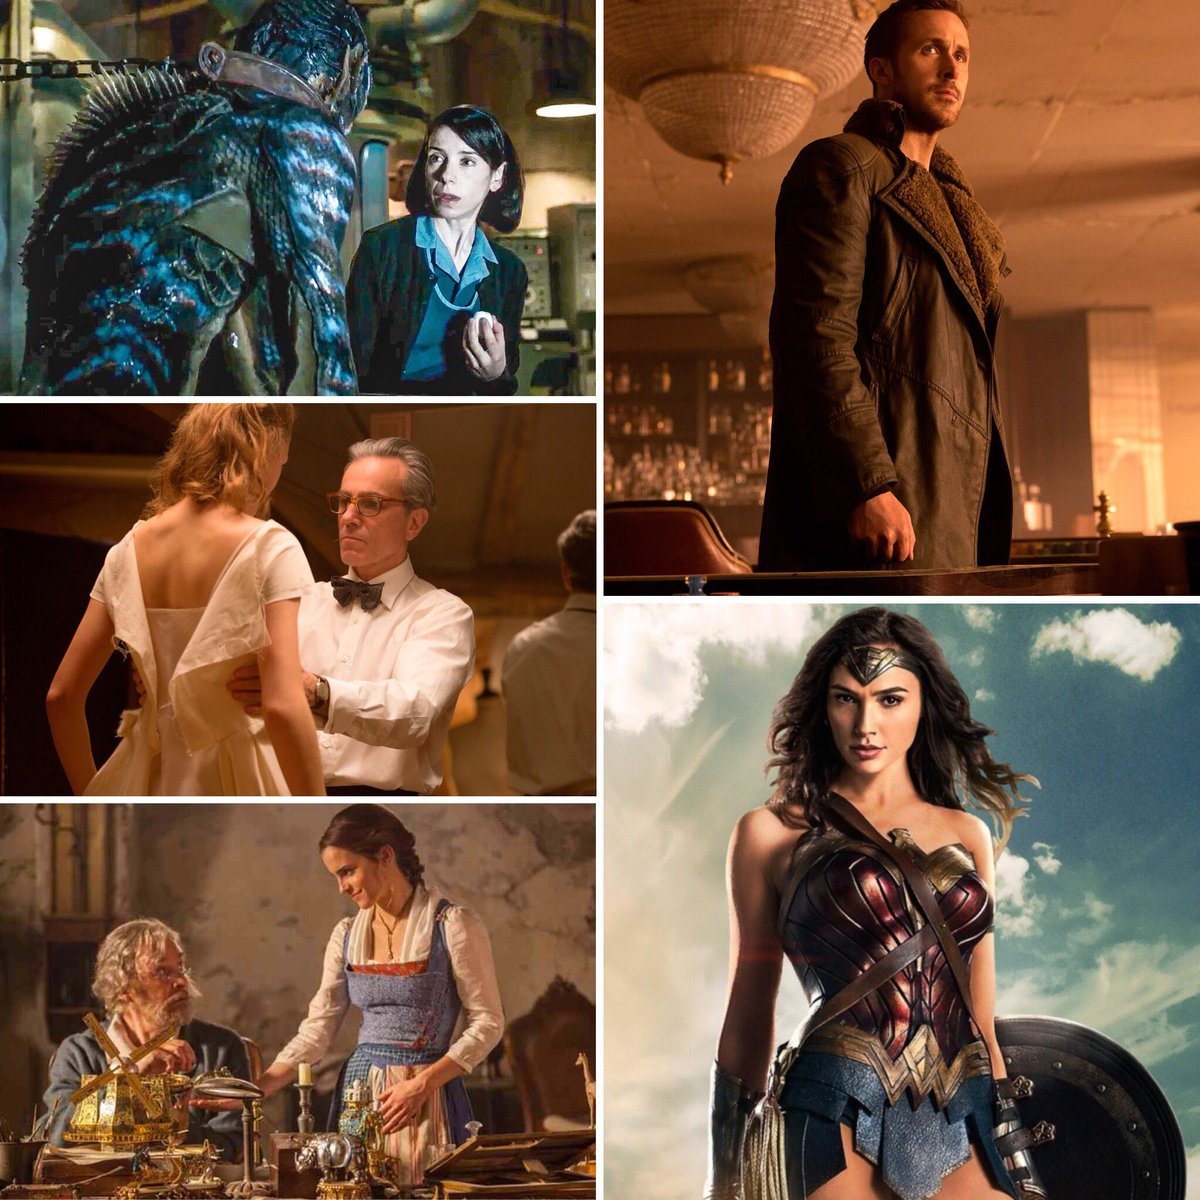 Costume Designers Guild Awards On Twitter Congratulations To All Of The Criticschoice Nominees For Best Costume Design Renee April Blade Runner 2049 Mark Bridges Phantom Thread Jacqueline Durran Beauty